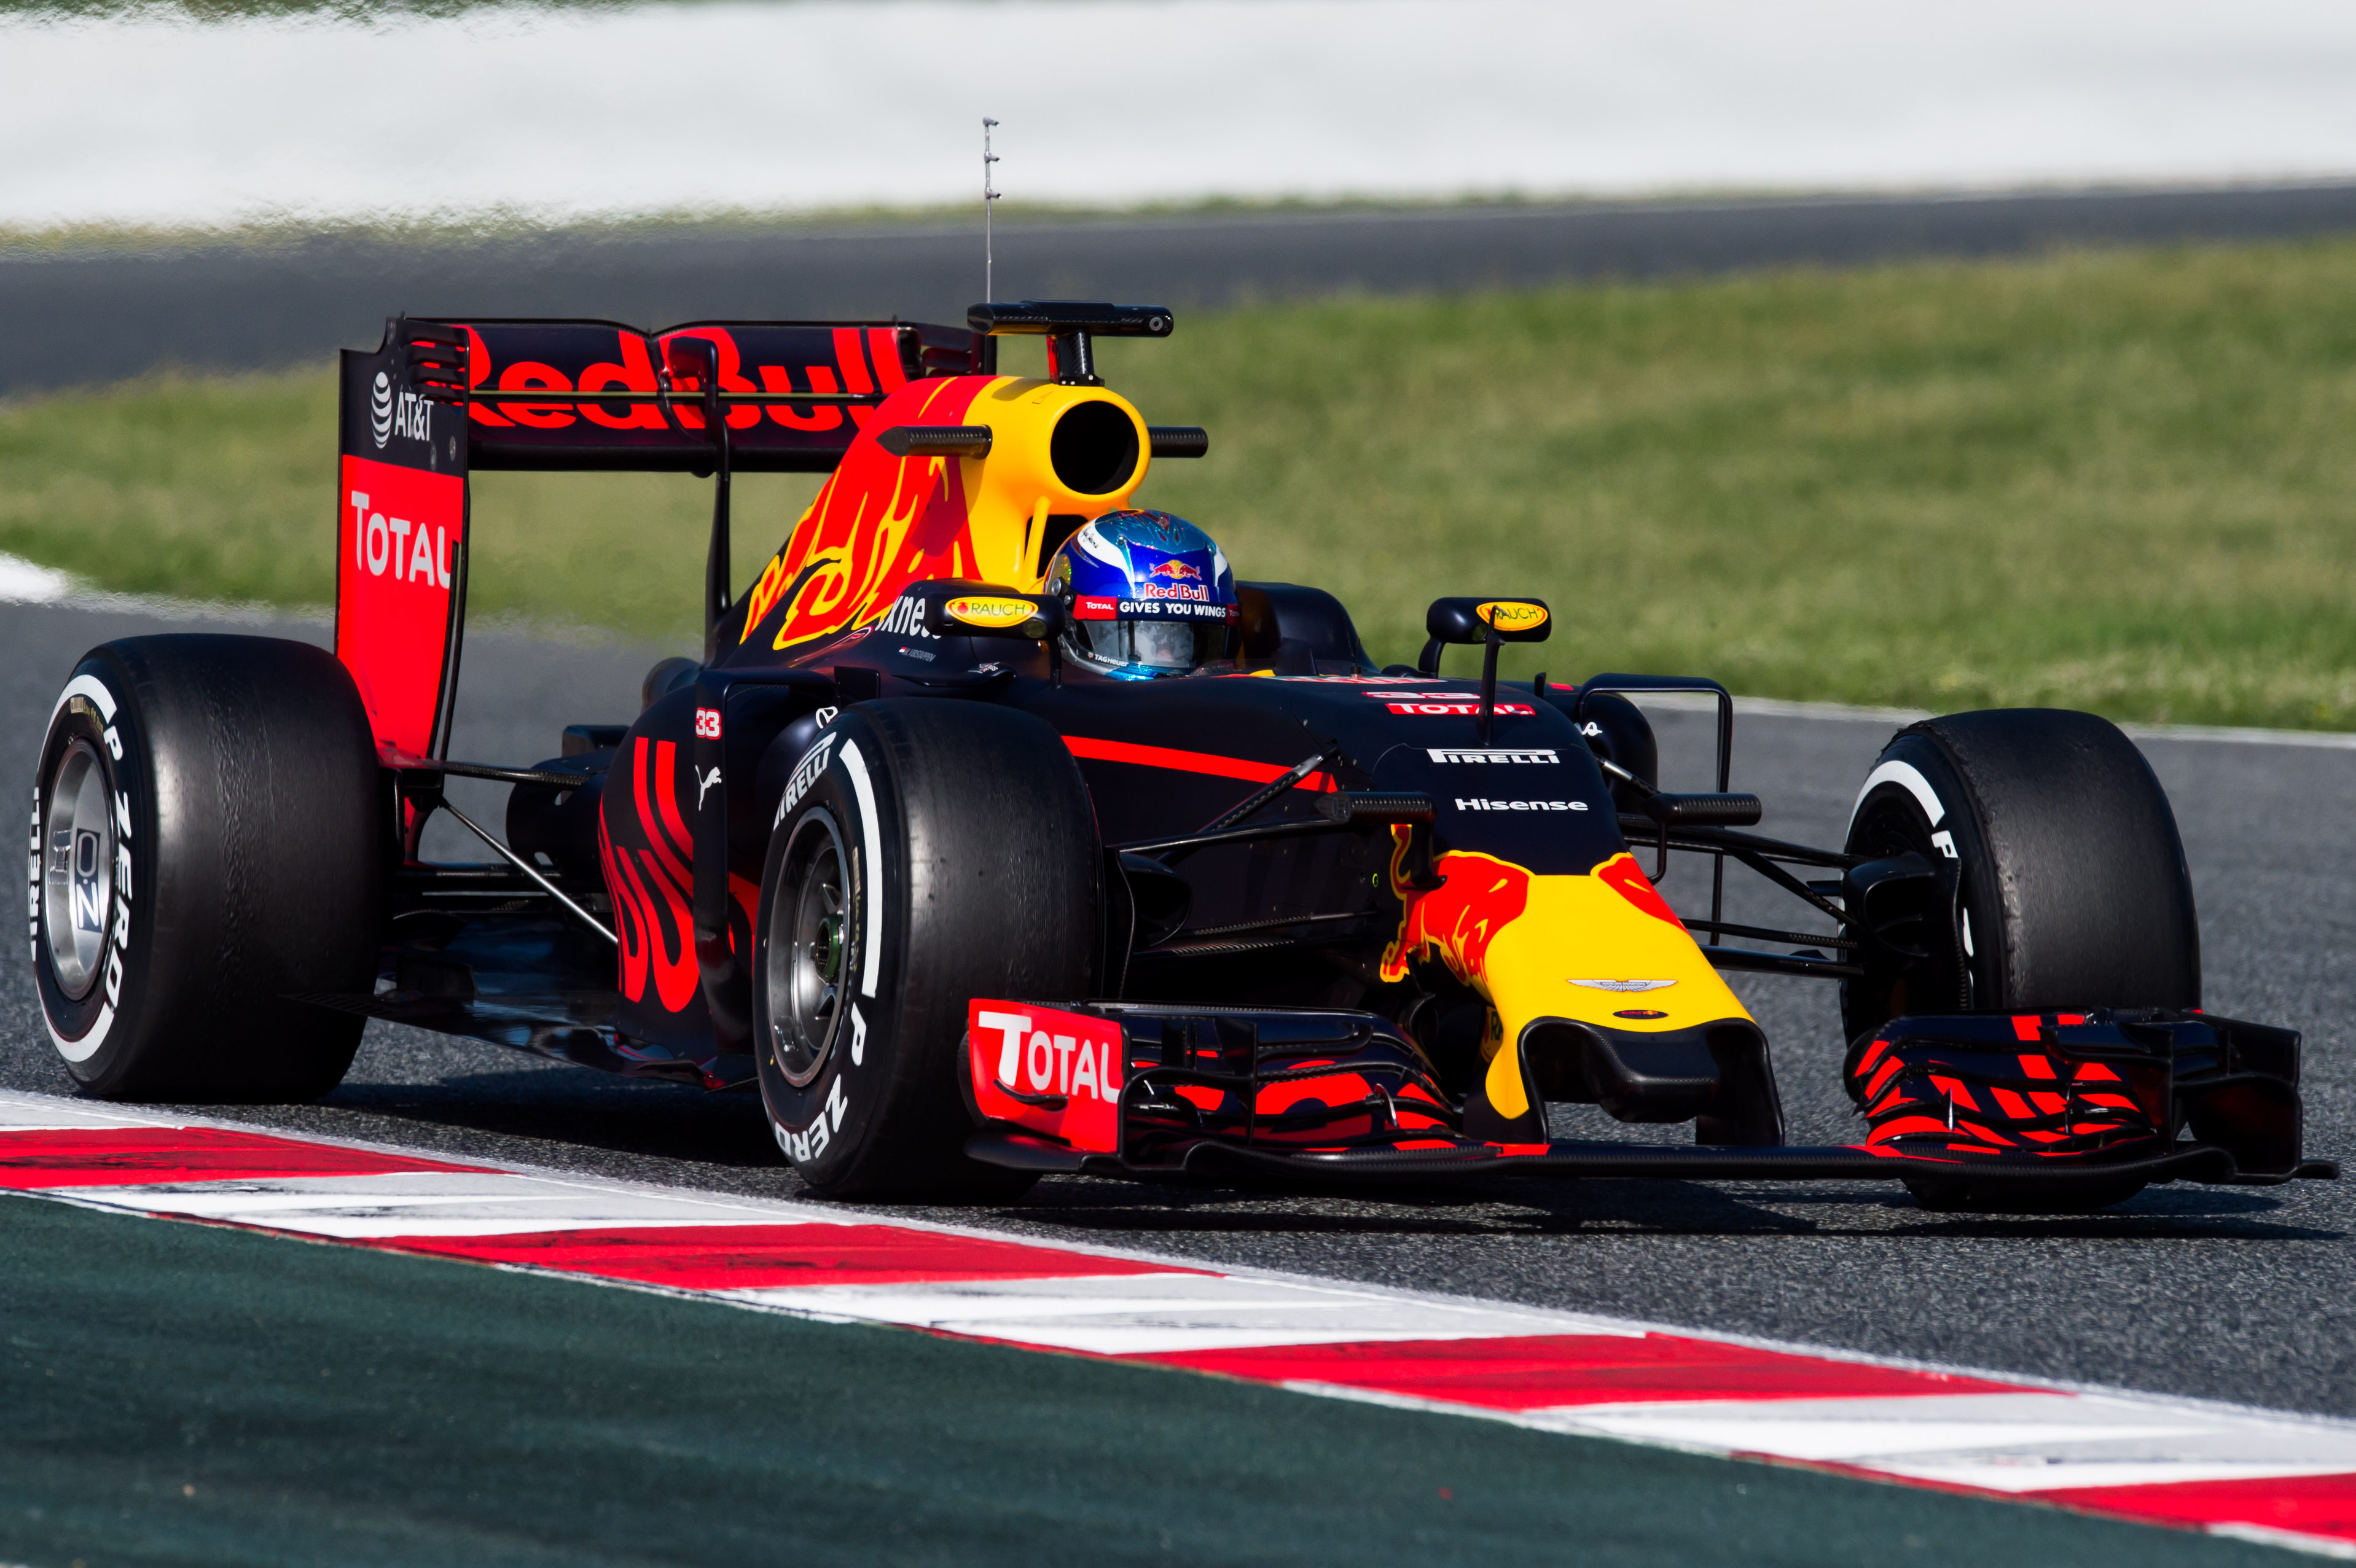 Verstappen ends Barcelona test on top - Speedcafe